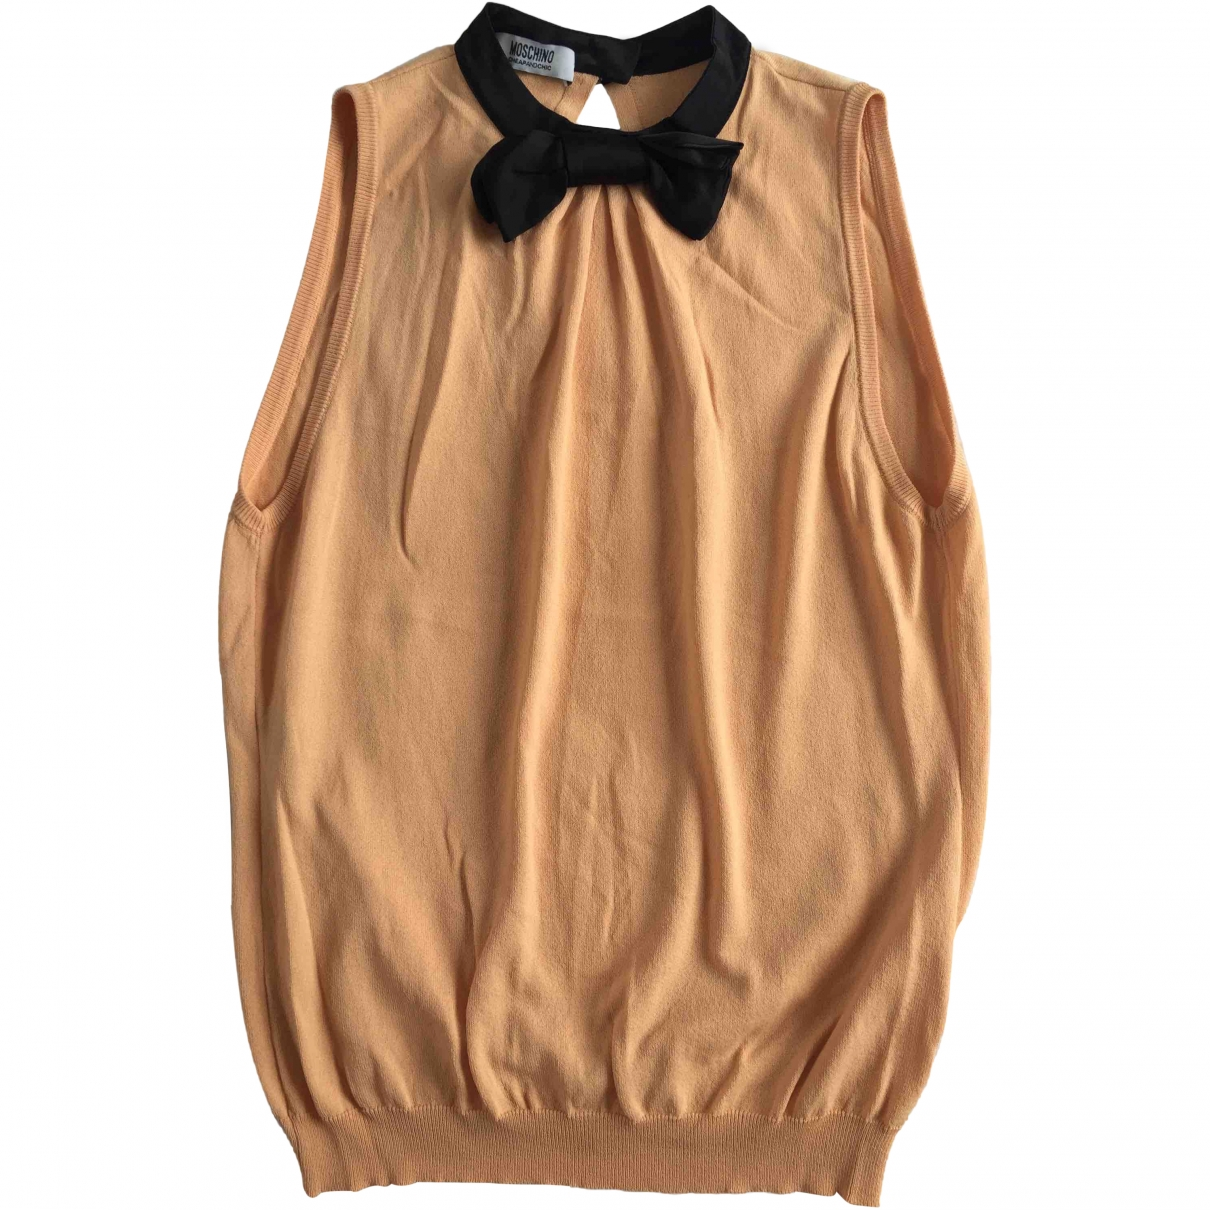 Moschino Cheap And Chic \N Top in  Orange Polyester